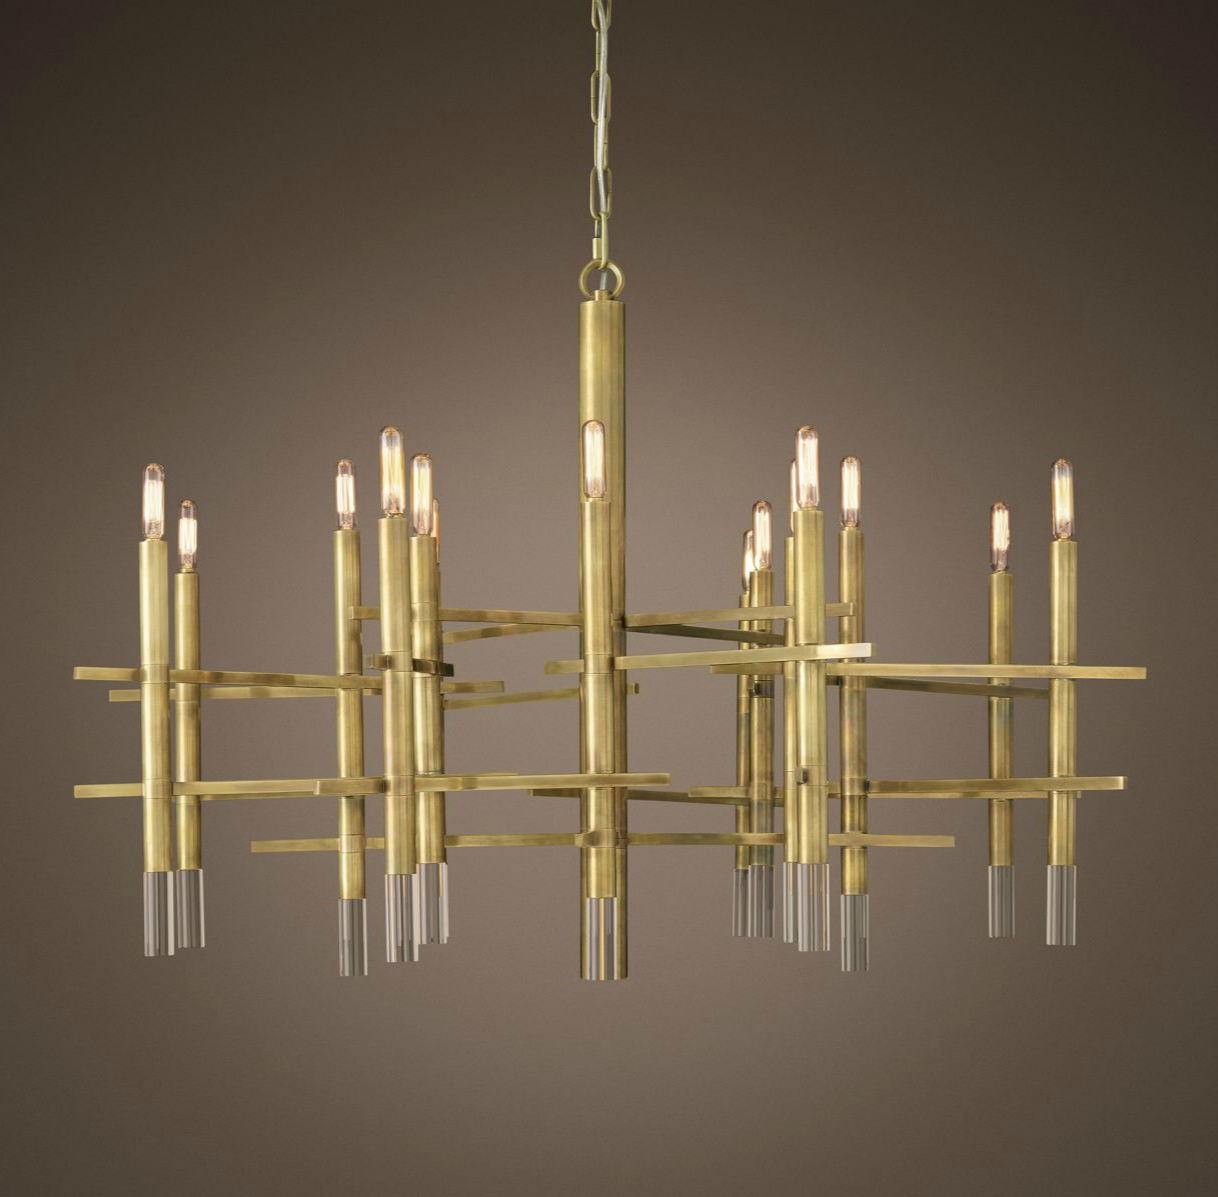 Brass chandelier by Restoration Hardware